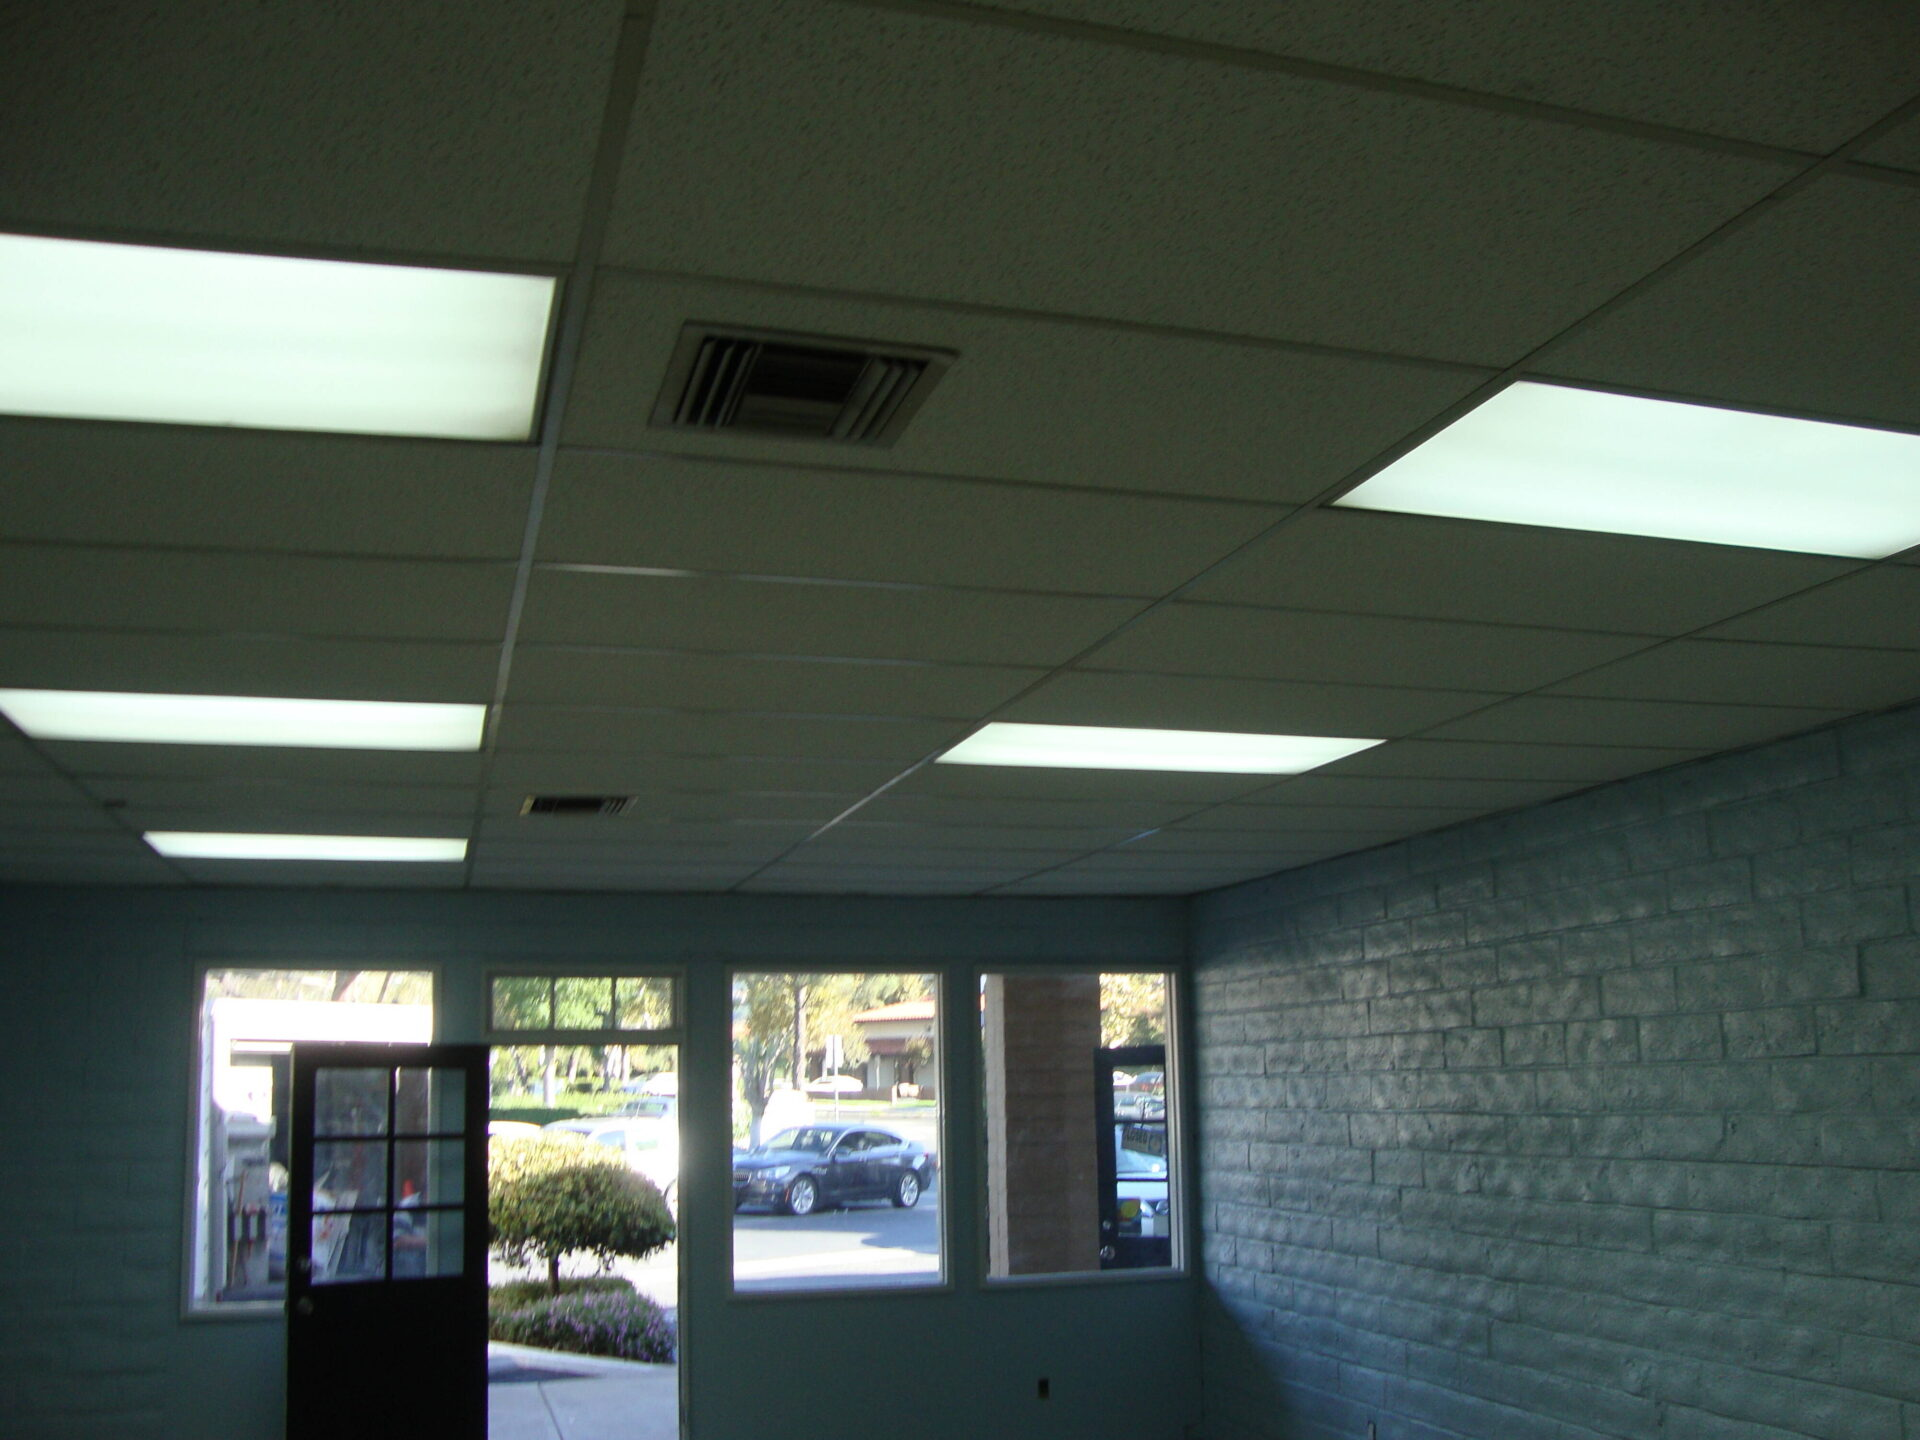 Drop Ceiling Tile Installs, T Bar Ceiling Grid Repairs & Replacement